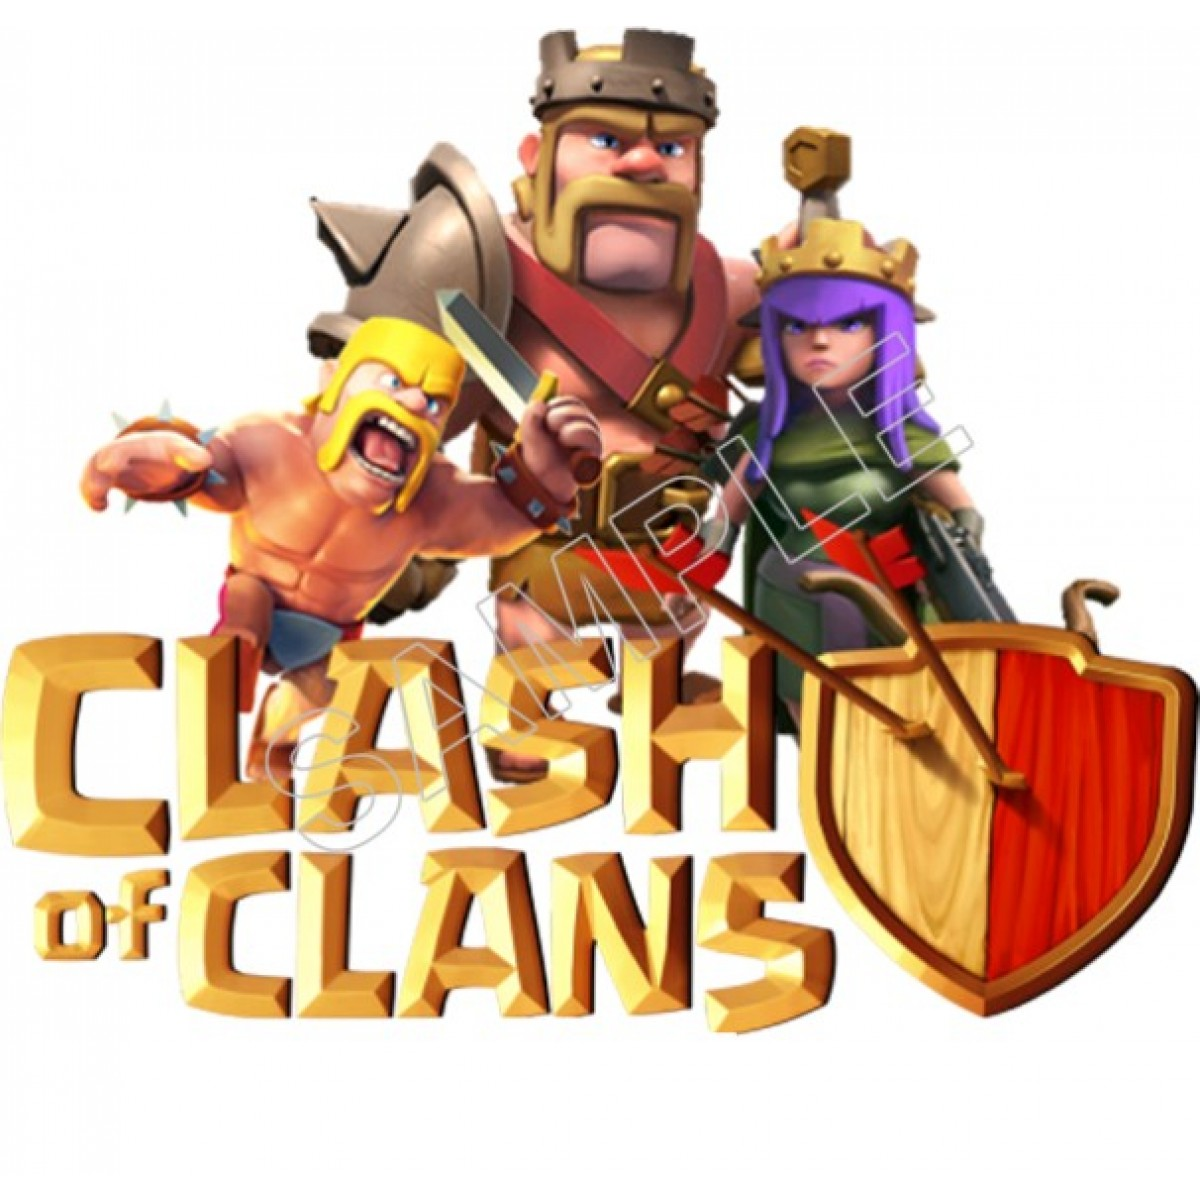 Clash of Clans 13.576.7 for Android - Download